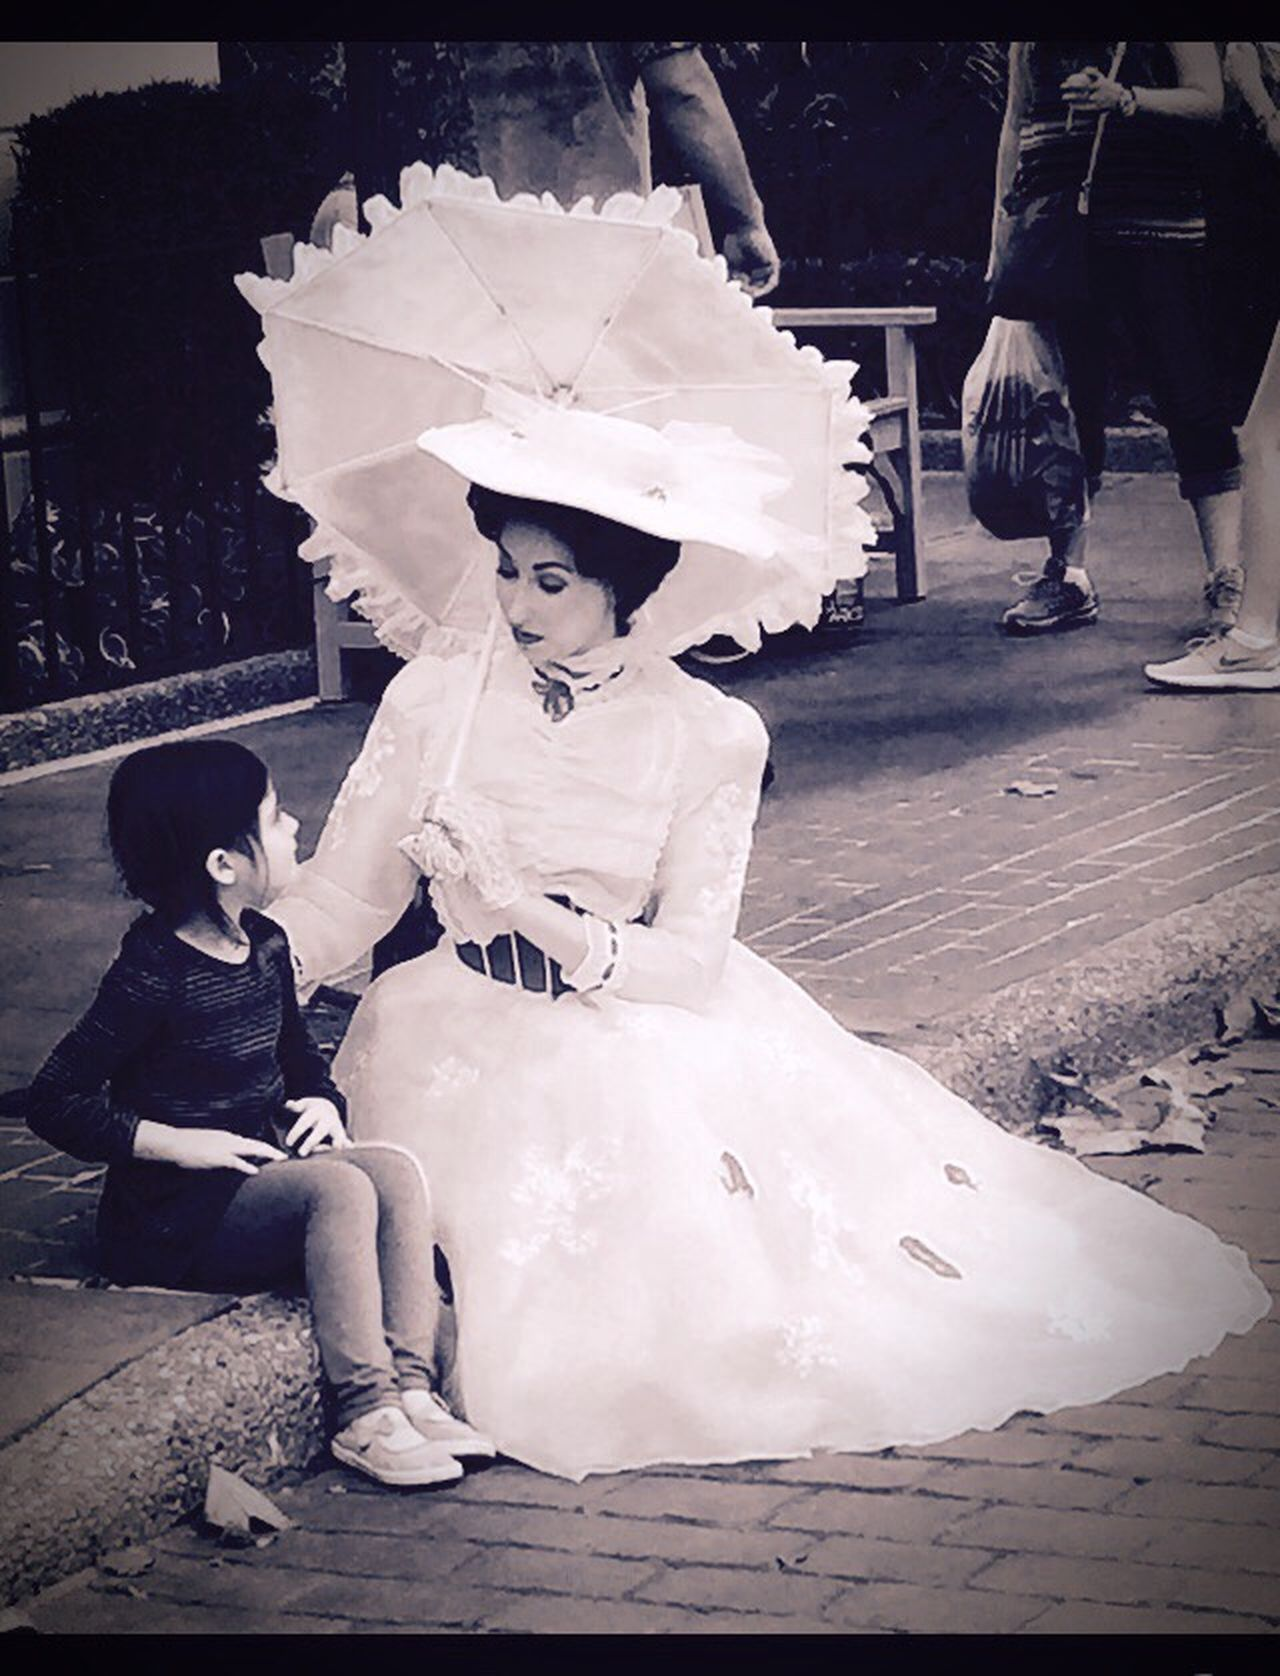 Little girl chatting with Mary Poppins Child Two People Sitting Outdoors Mary Poppins DisneyWorld Marypoppins Mary Poppins Collection Justaspoonfullofsugar Little Girl Chat Chatting Idol Etiquette Vintage Vintage Lens Vintage Moments Magiccarpetbag Umbrella Disney Epcot